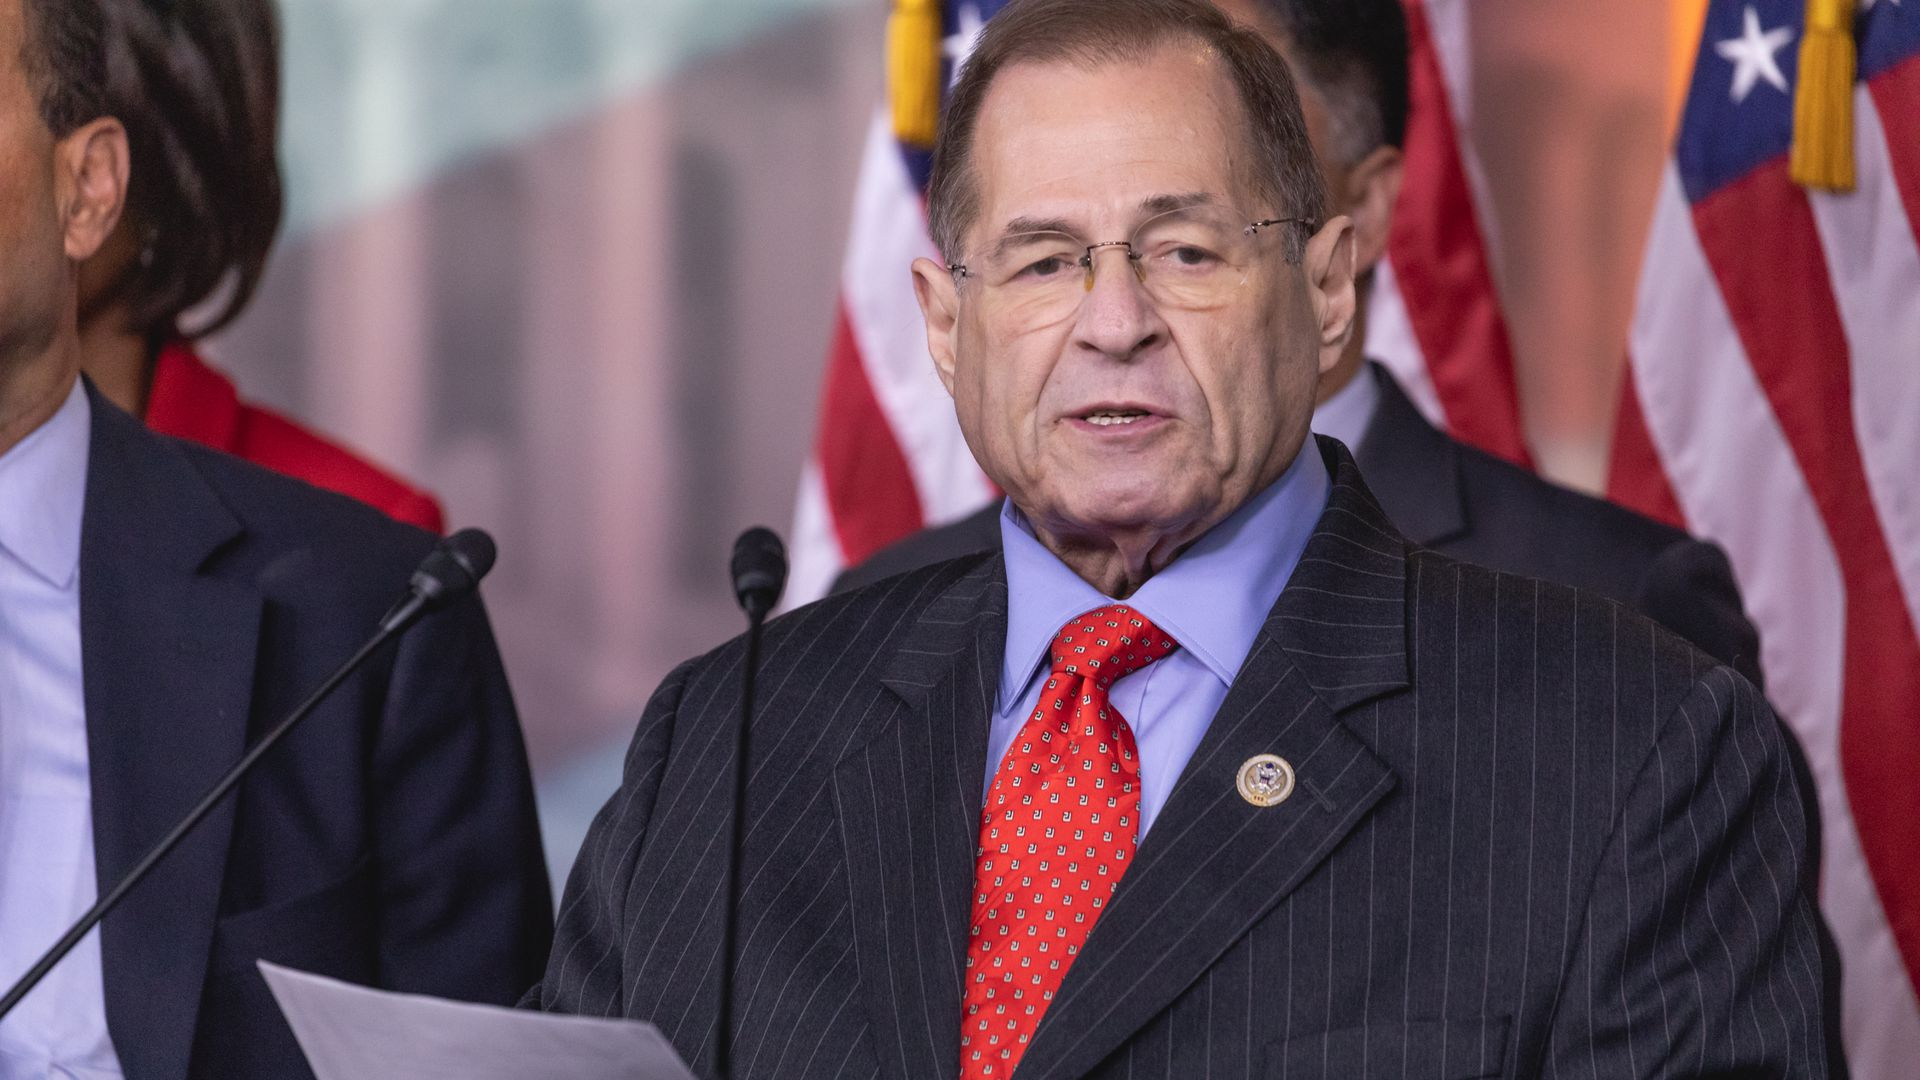 Rep. Jerry Nadler standing at a podium in the Capitol building wearing a red tie.